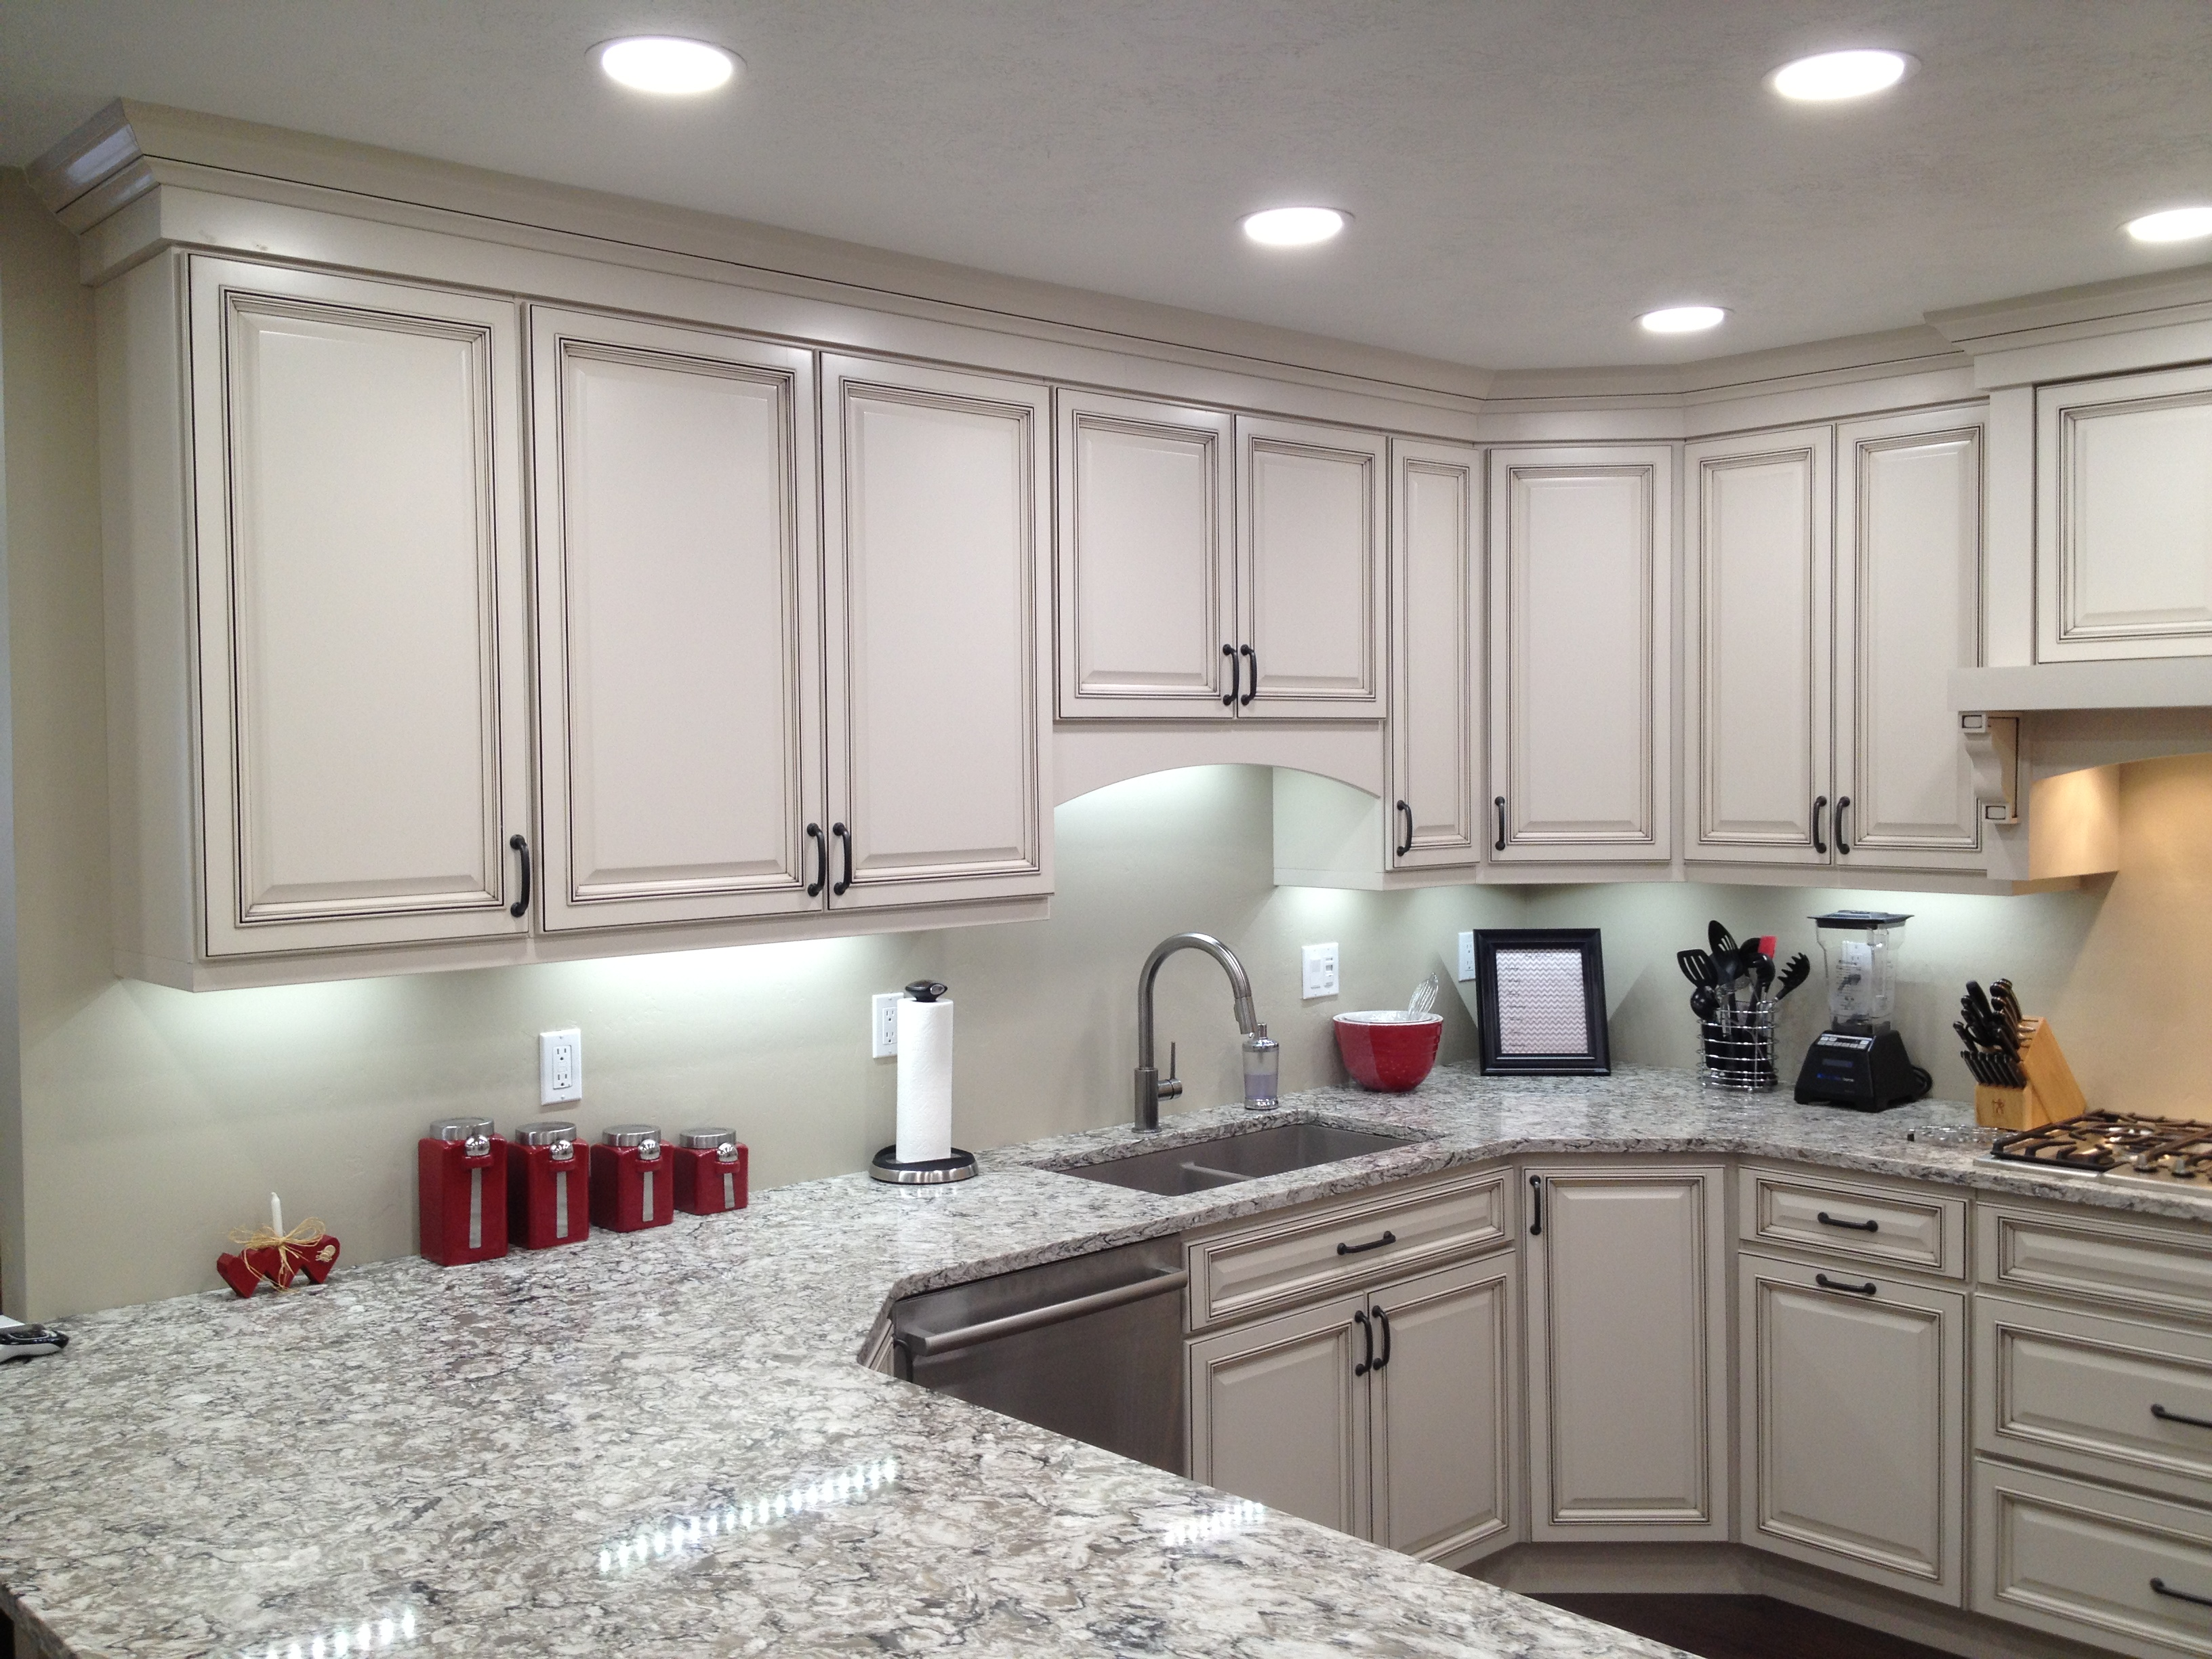 Wireless LED Under Cabinet Lighting - ILLUMRA